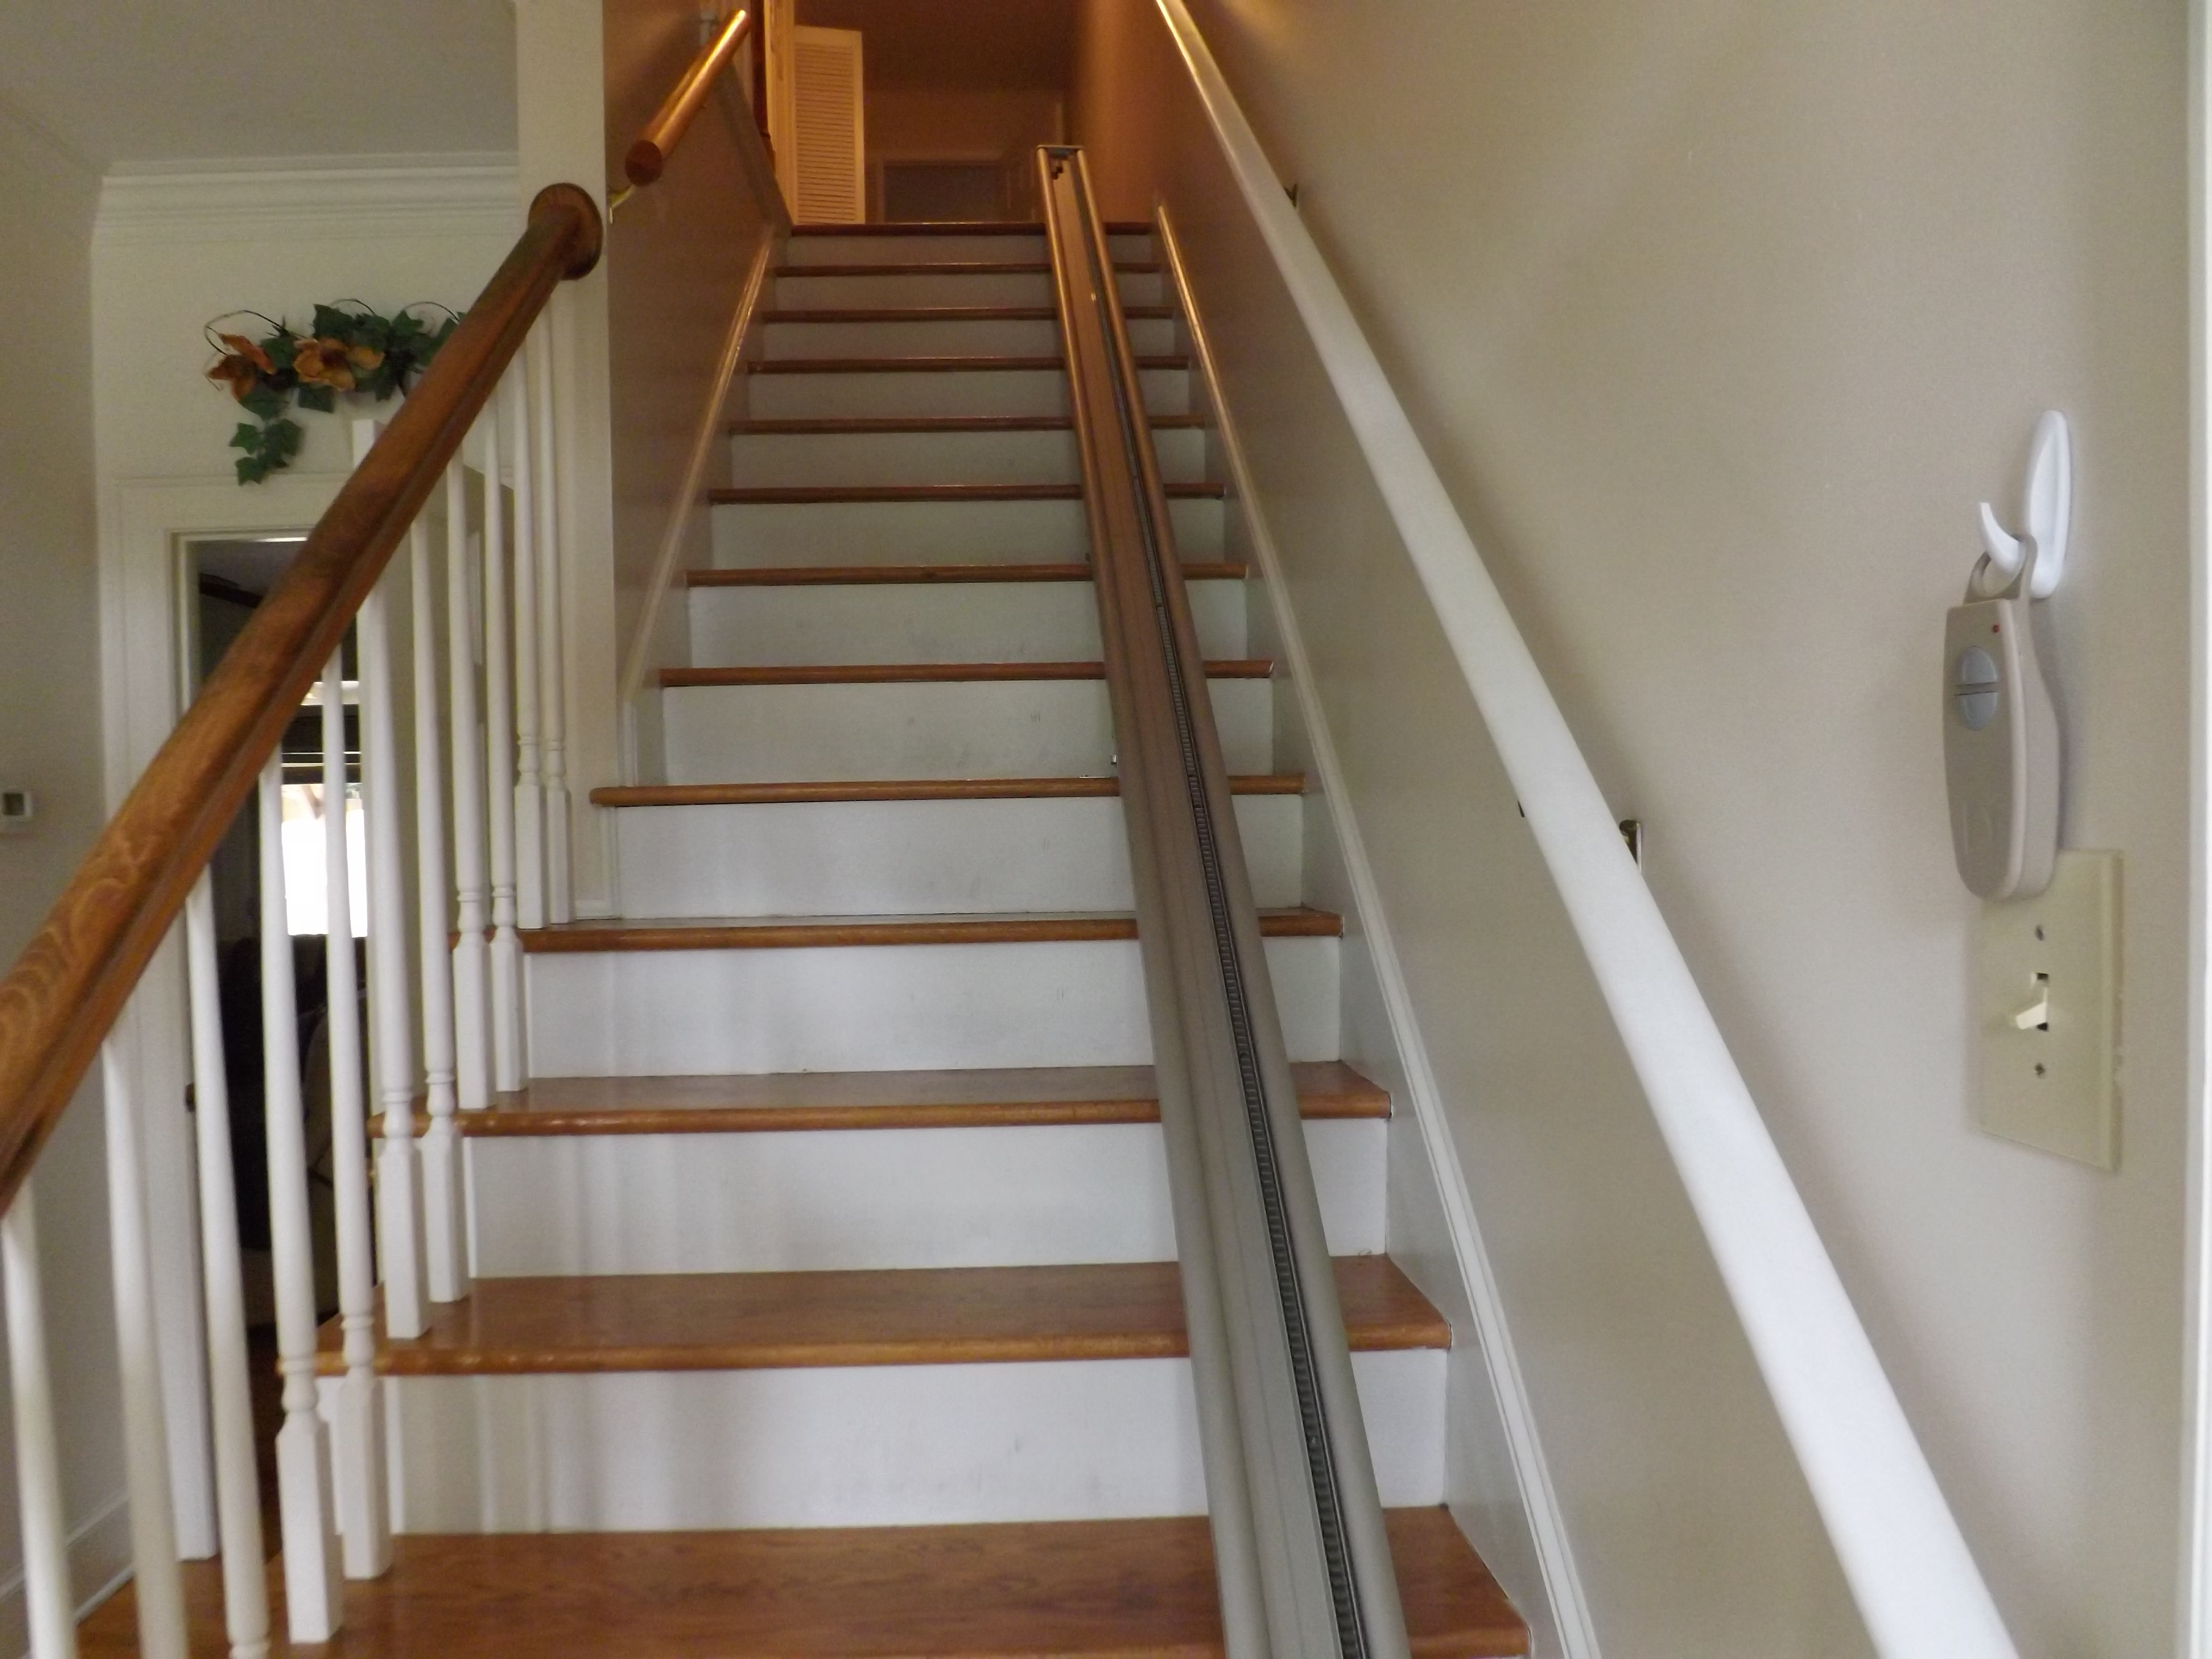 Photo 3 of Stairlift